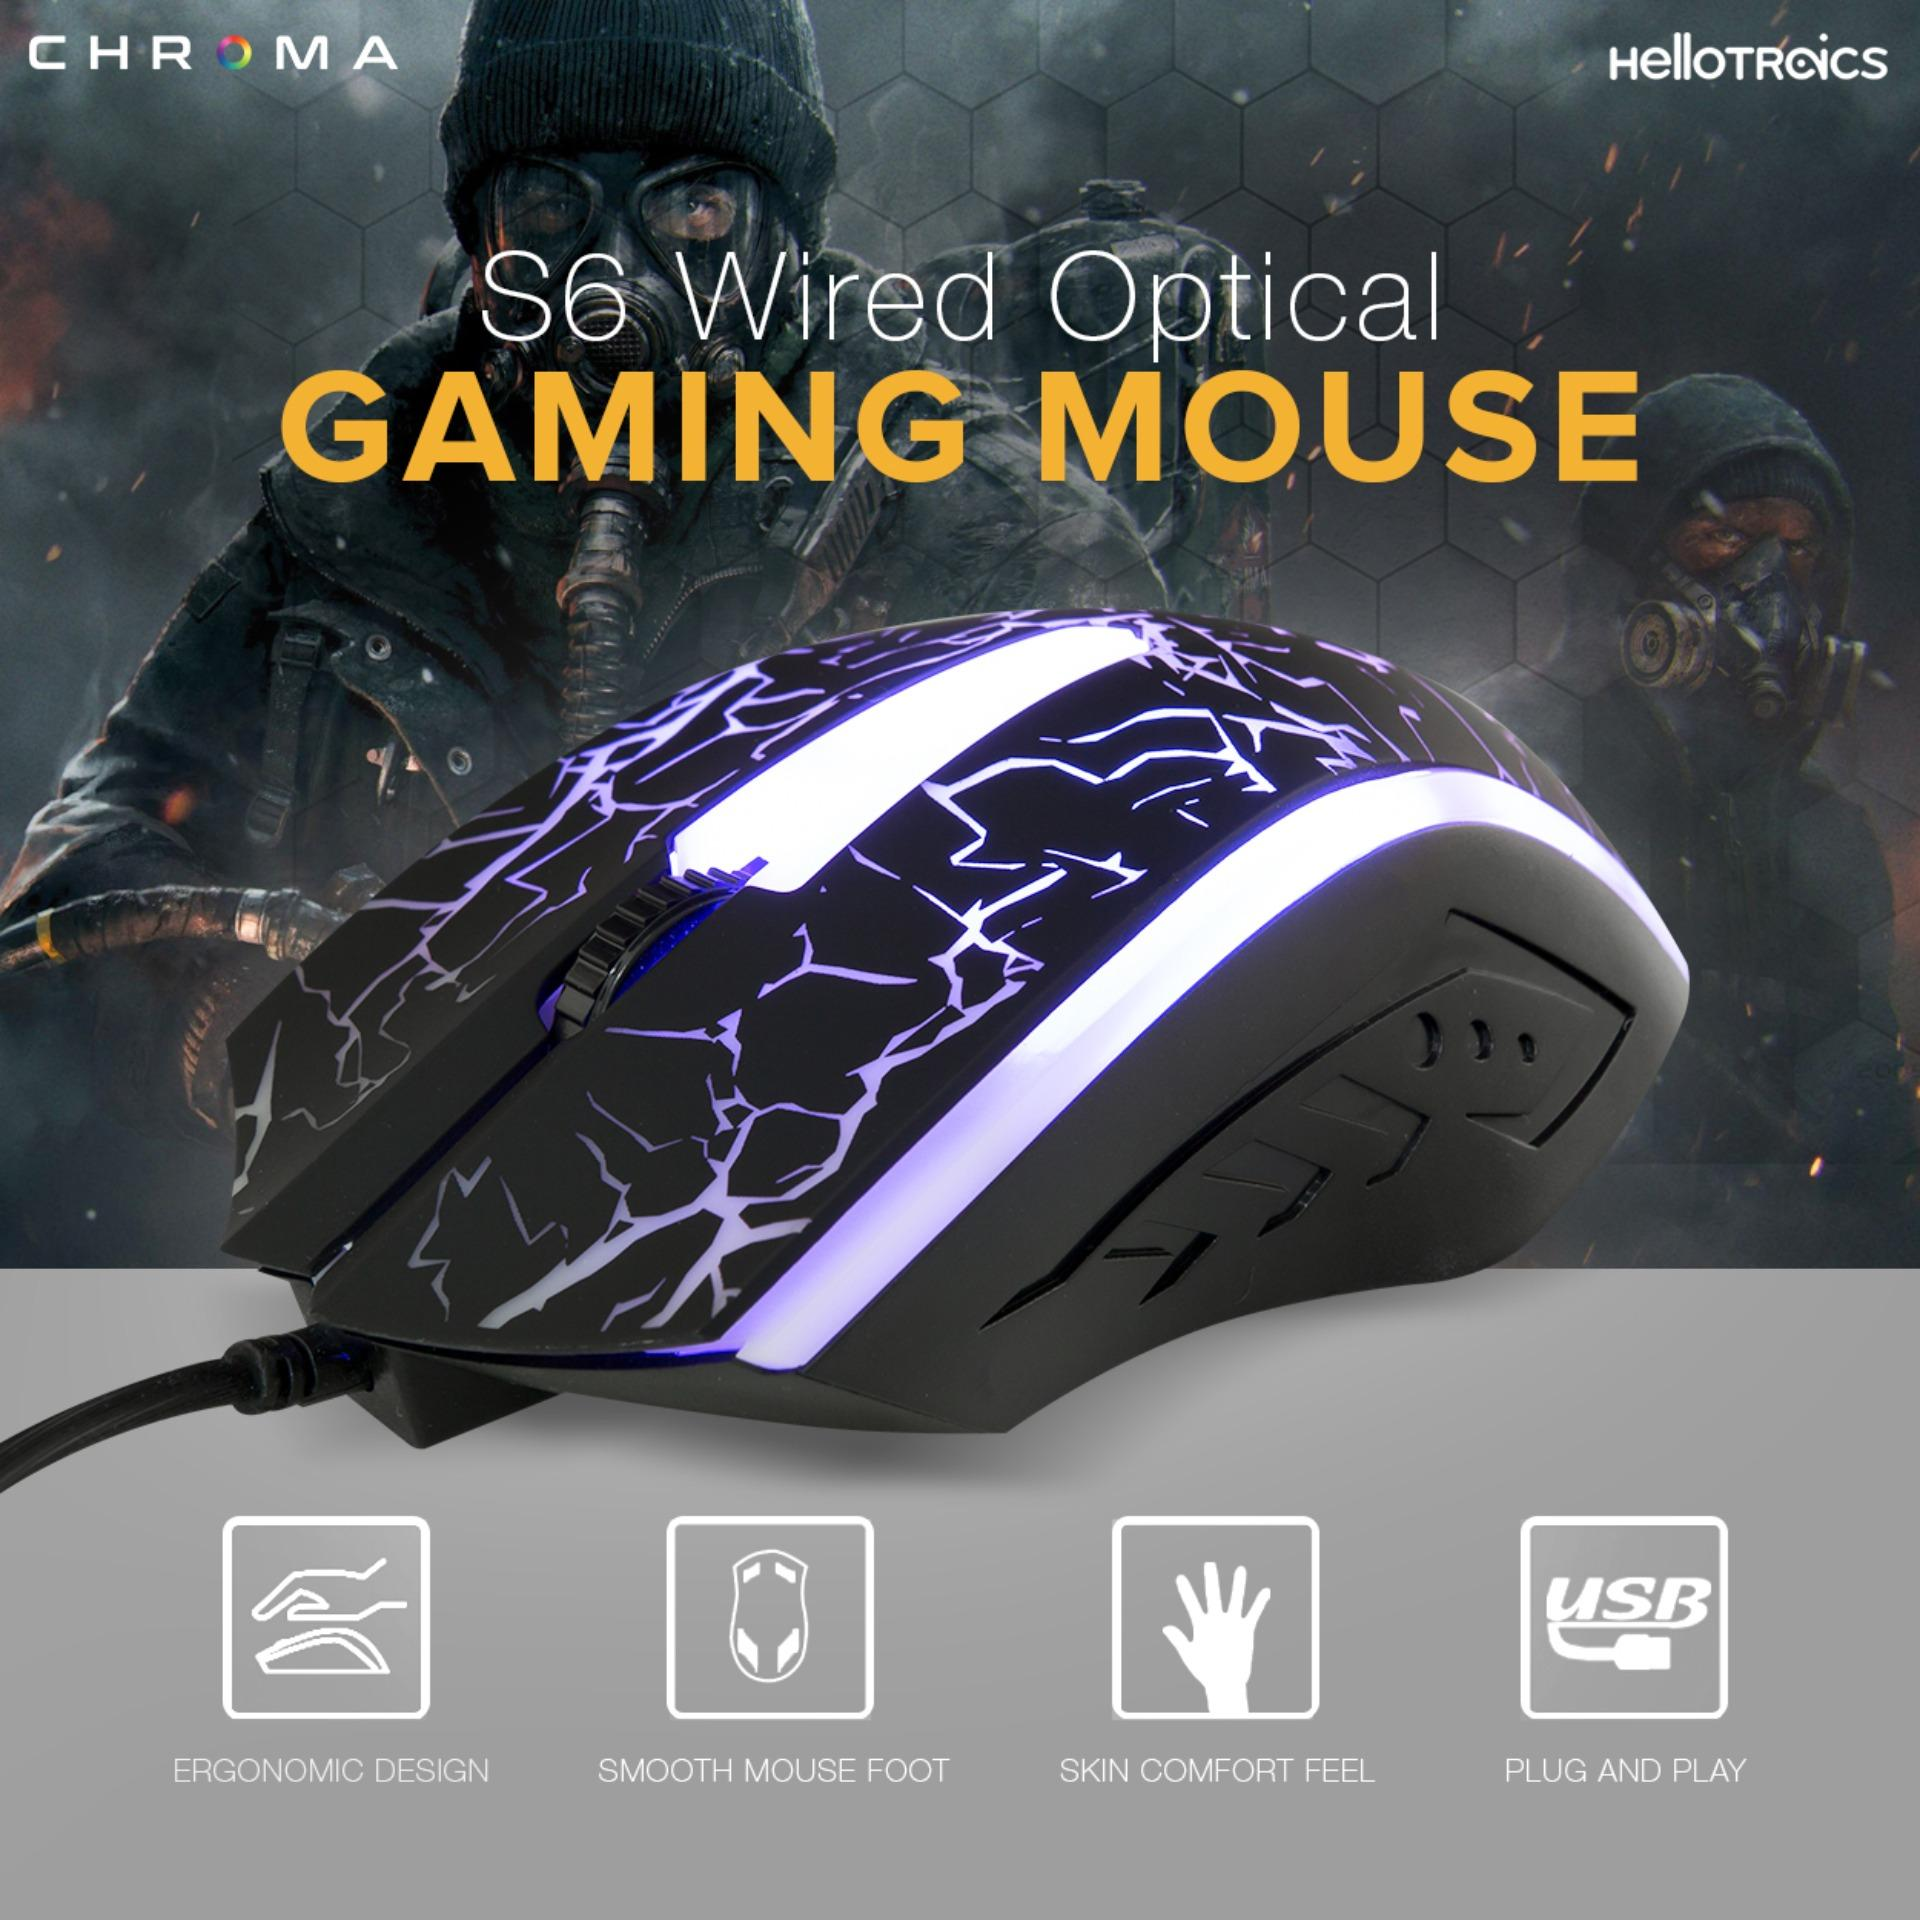 The Price Of Chroma Edge Doom Pro Nod Gaming Keyboard With Mouse Fantech Rhasta G10 4 Button S6 Wired Optical Black